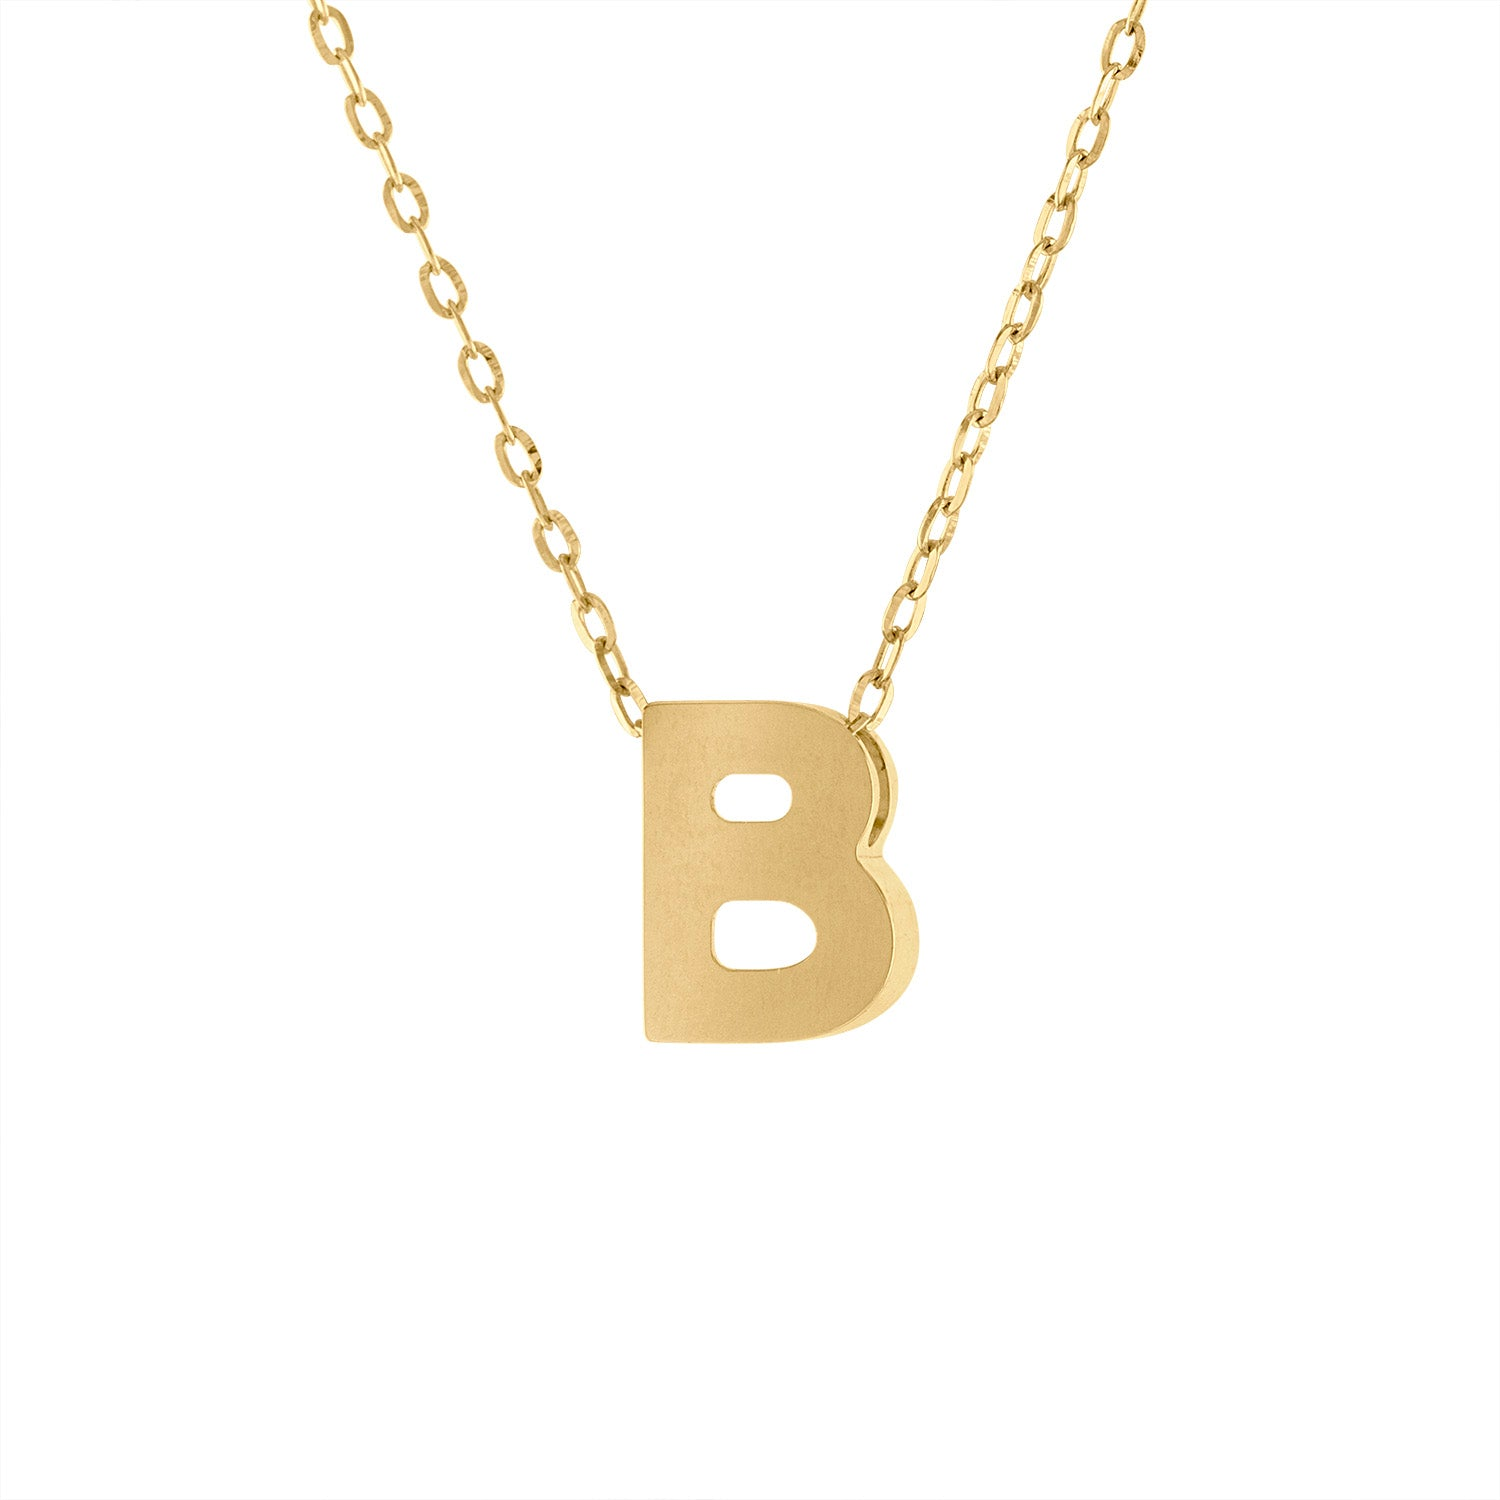 14k Yellow Gold plain initial B necklace